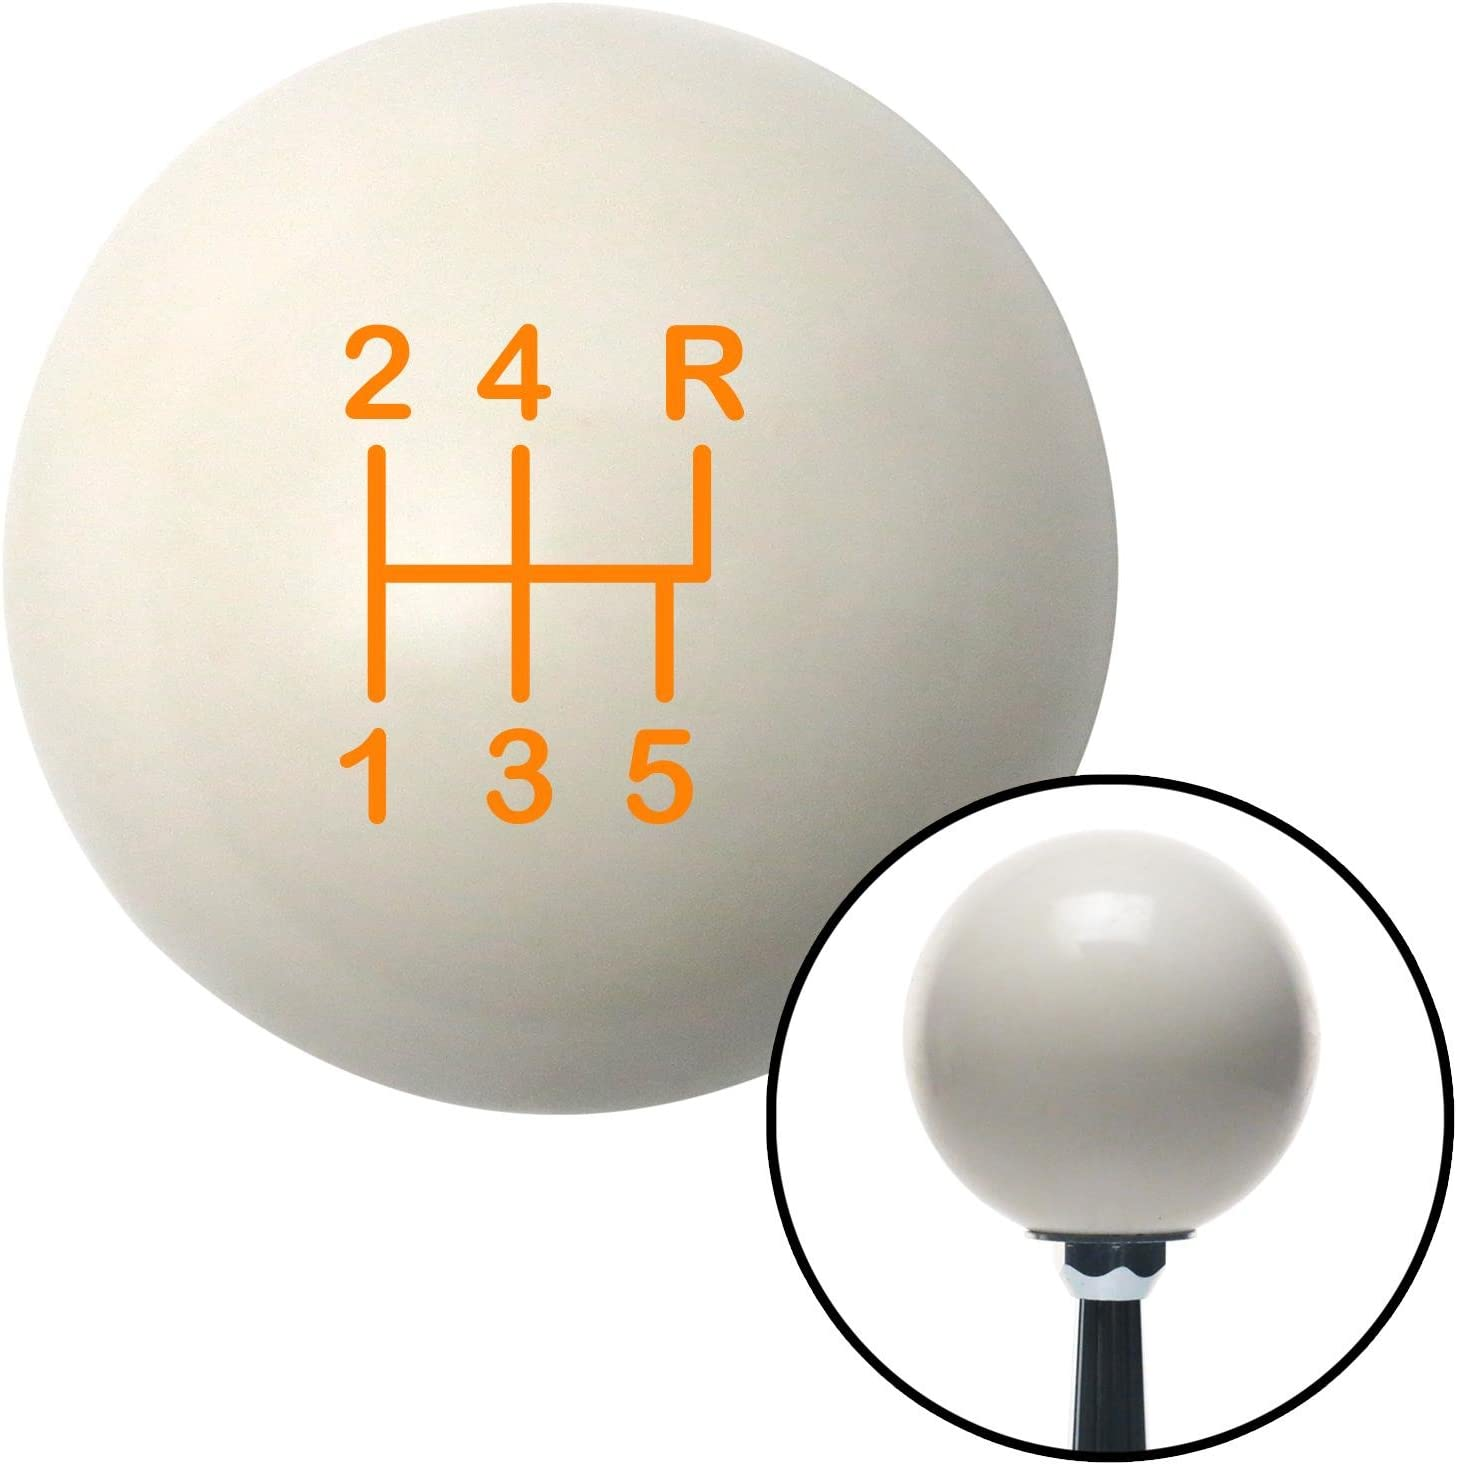 American Shifter 76297 Ivory Shift Knob with M16 x 1.5 Insert Orange Shift Pattern 13n